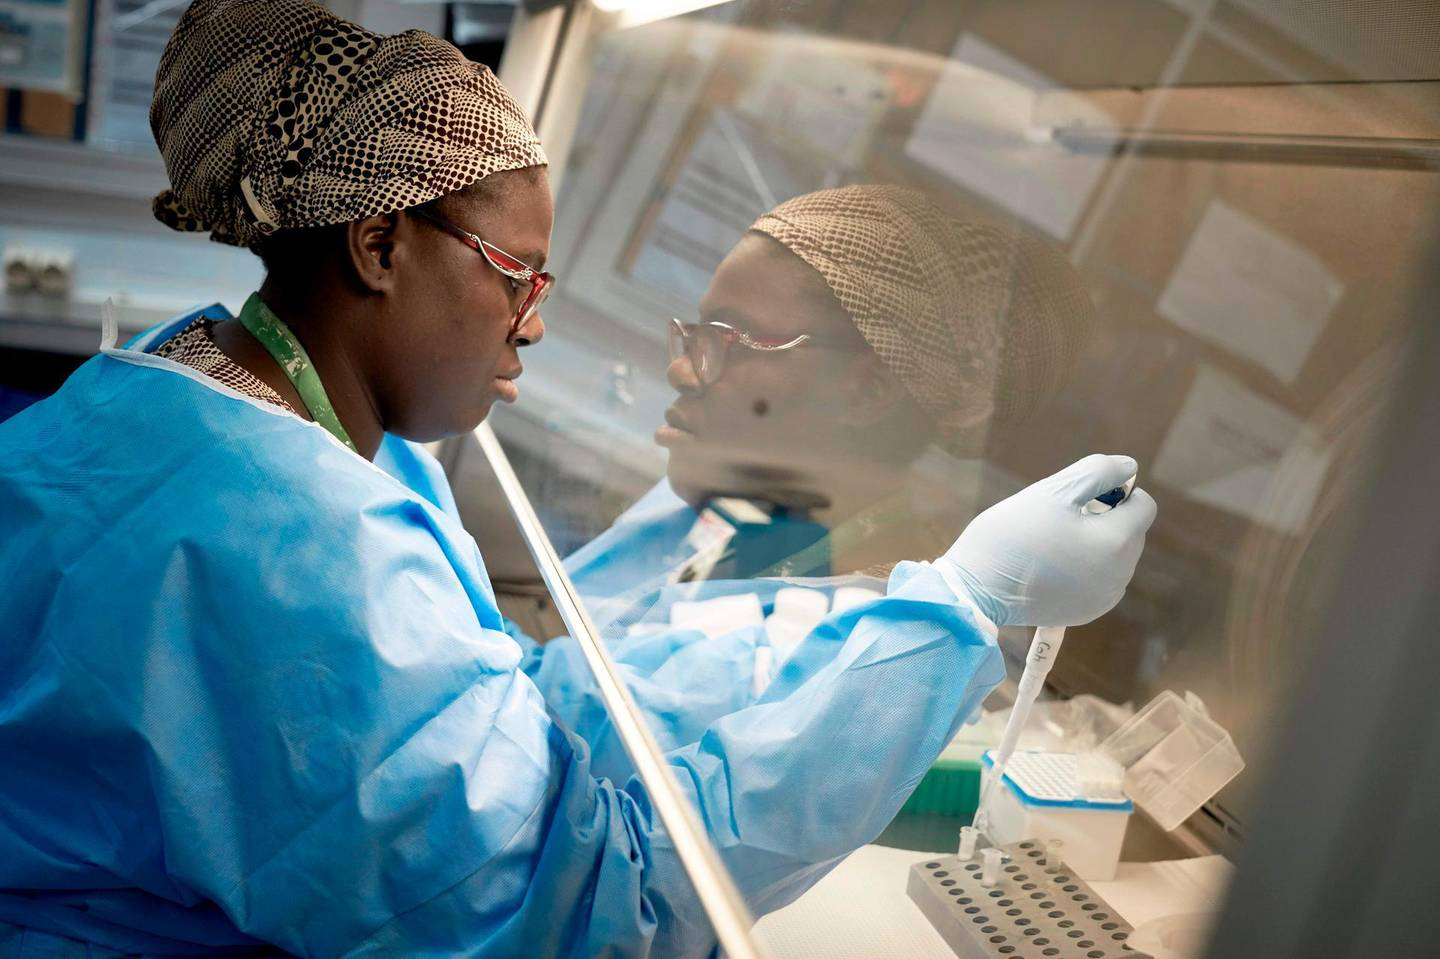 CORRECTION / TOPSHOT - A Malian researcher conducts a COVID-19 coronavirus test, at the University Clinical Research Center of Bamako, on March 19, 2020. Although no positive cases have yet been confirmed in Mali, hospitals and doctors are getting ready for a potential emergency.  / AFP / MICHELE CATTANI